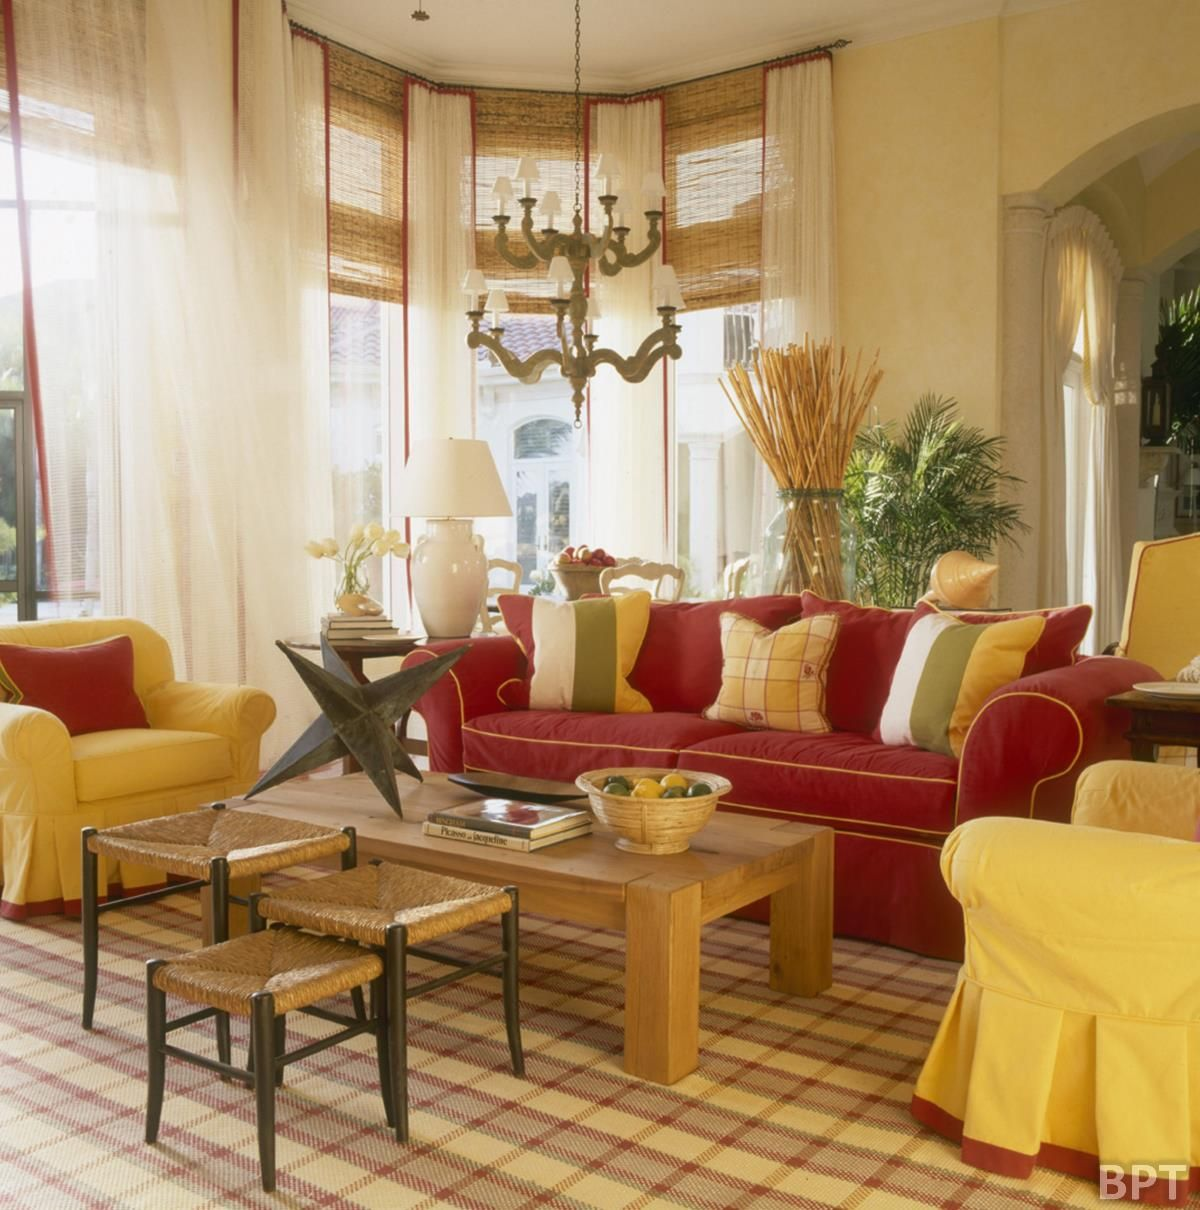 Color Home Interior Ideas: Classic Interior Living Room Design With Yellow And Red